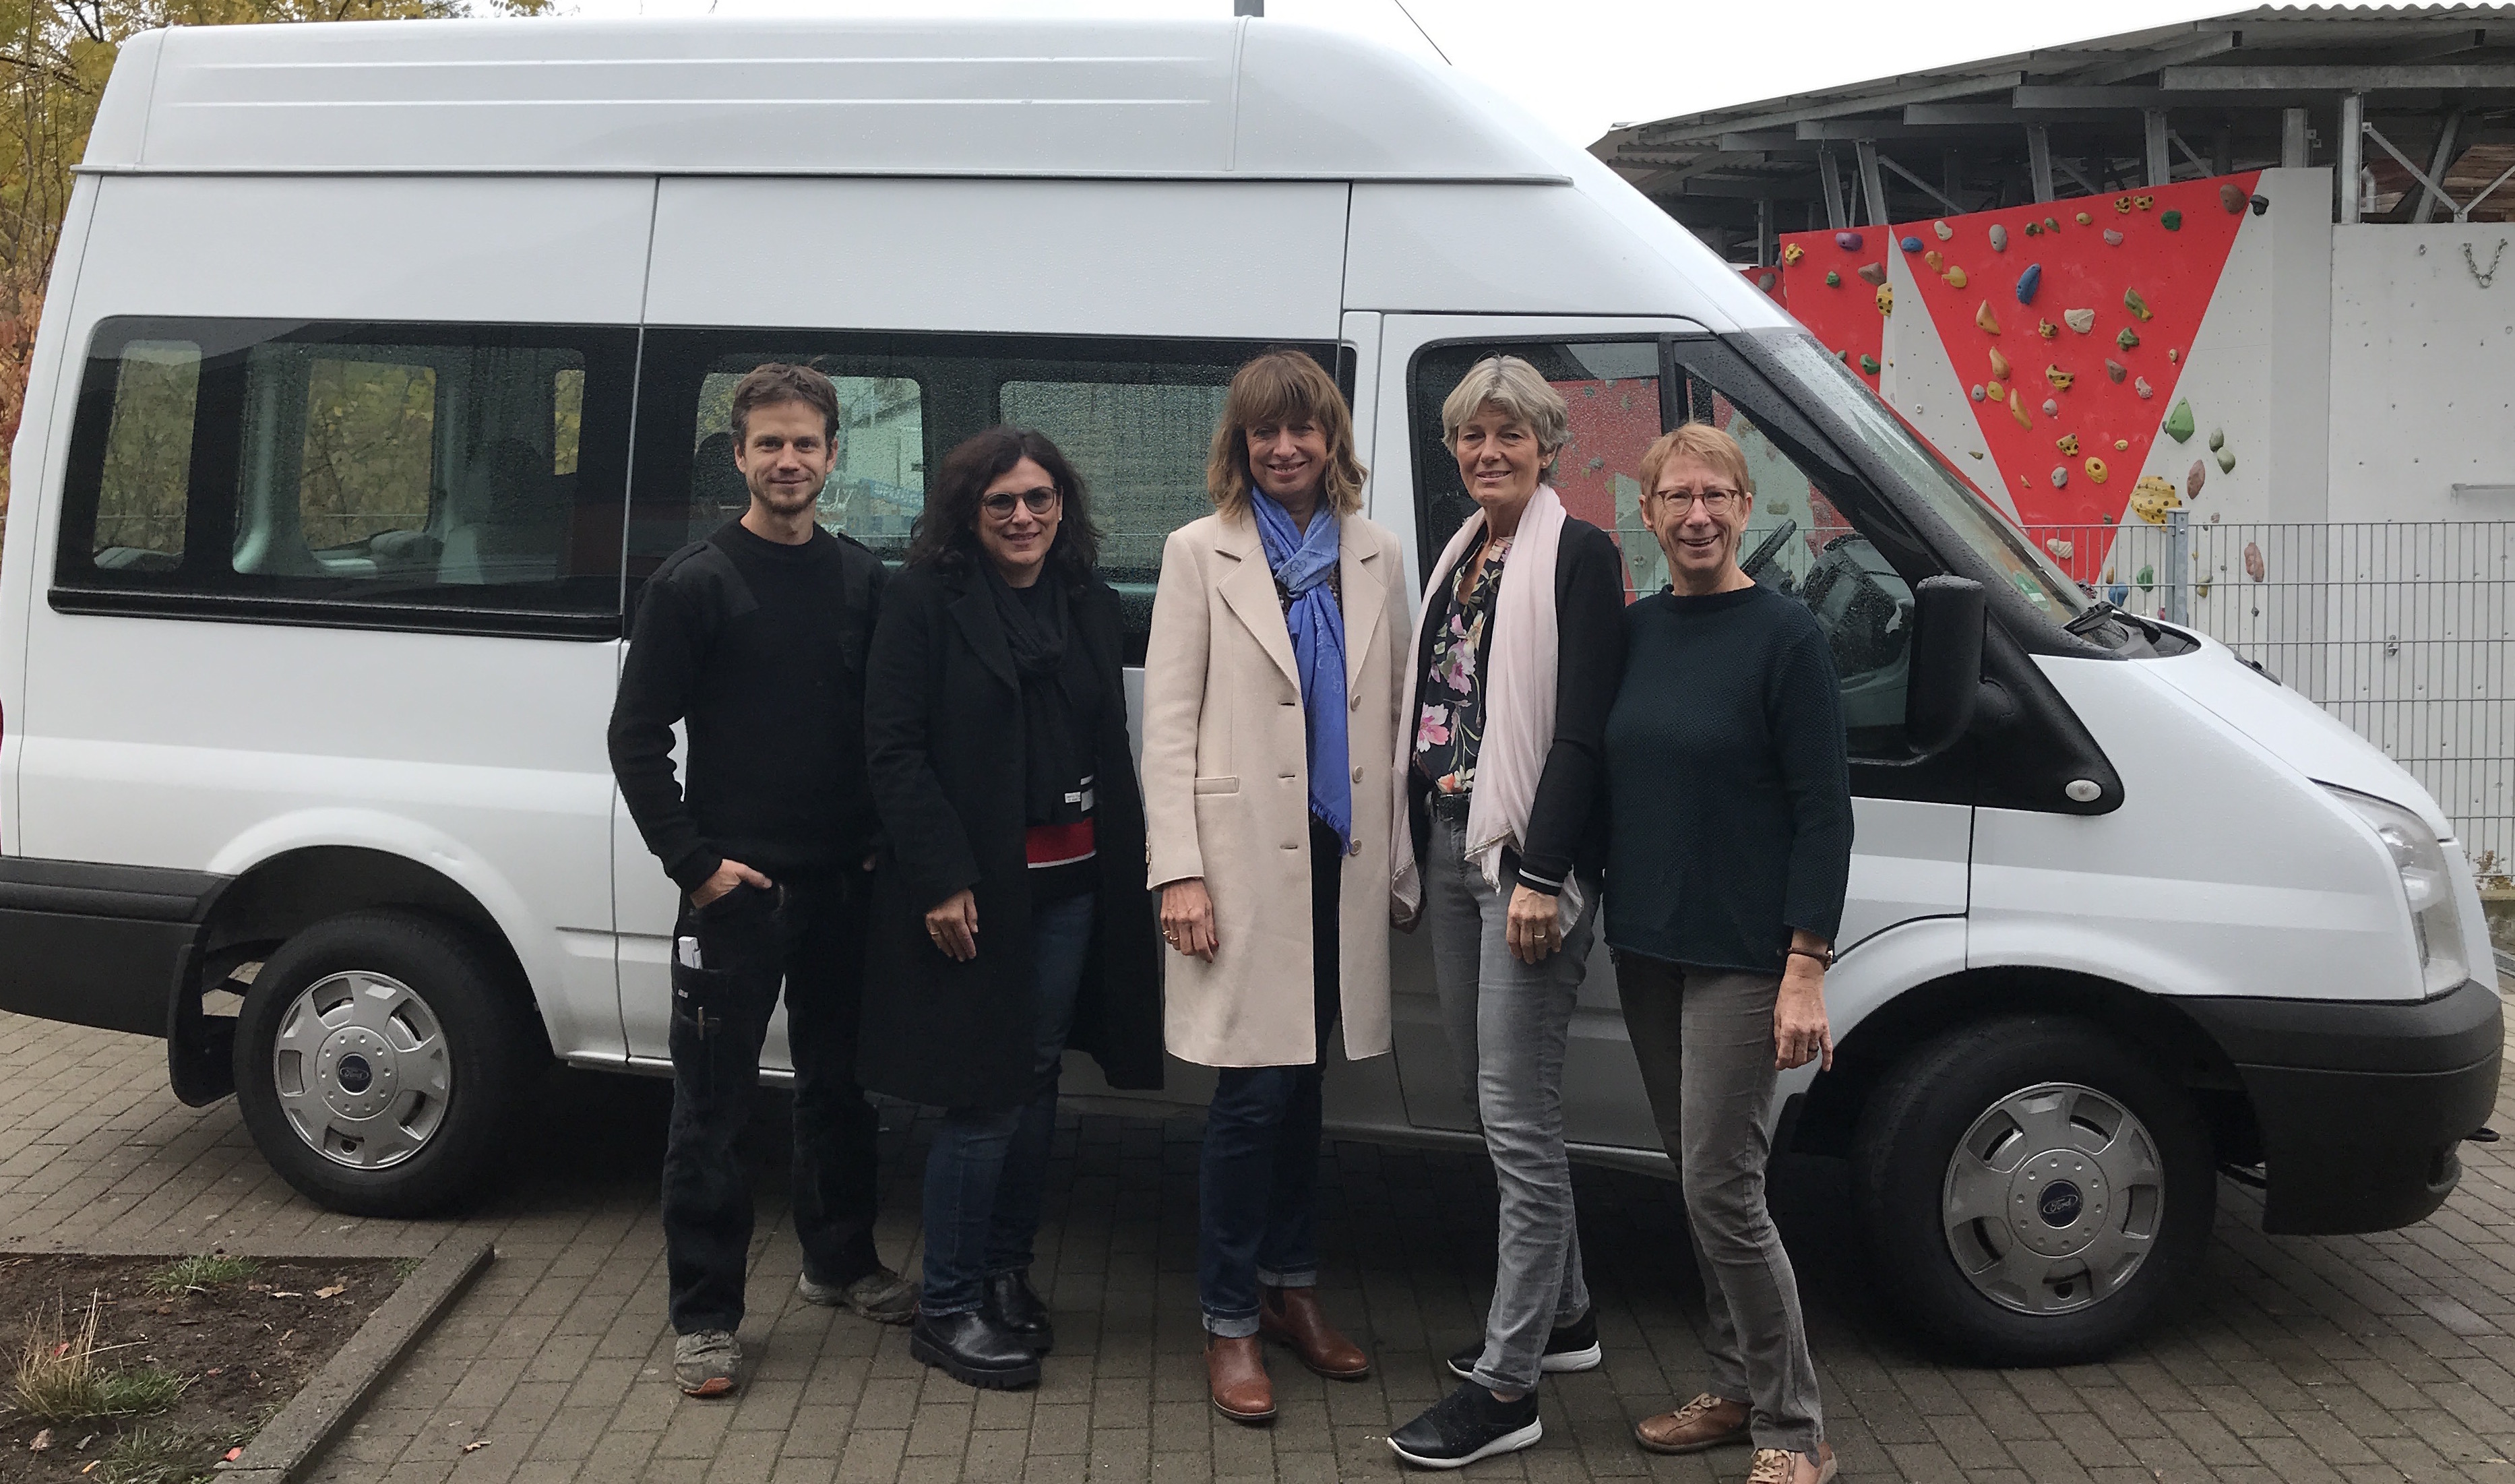 Internationaler Frauenclub bergabe Spende fr neuen Spieli Bus